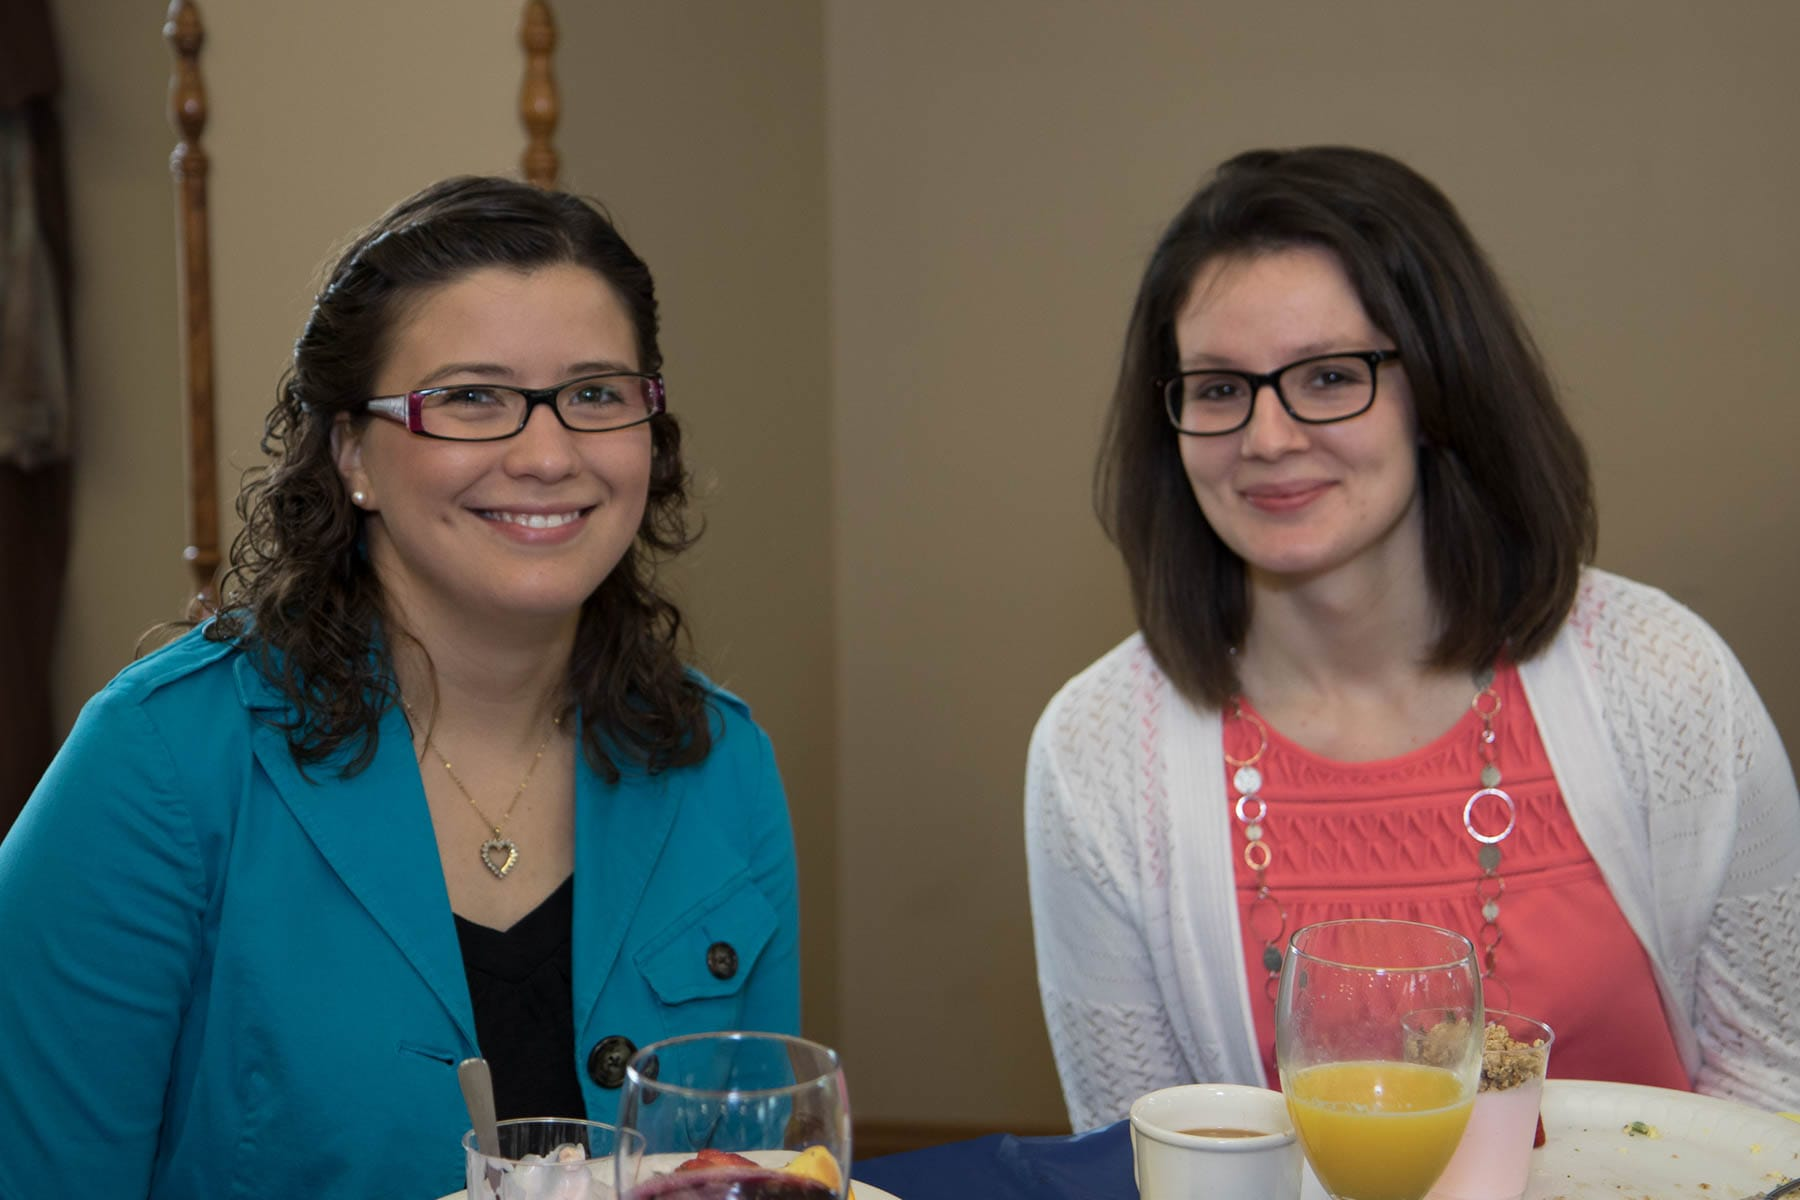 Fairhaven Baptist Church Preaching Conference 2016 Alumni Breakfast (14 of 33)